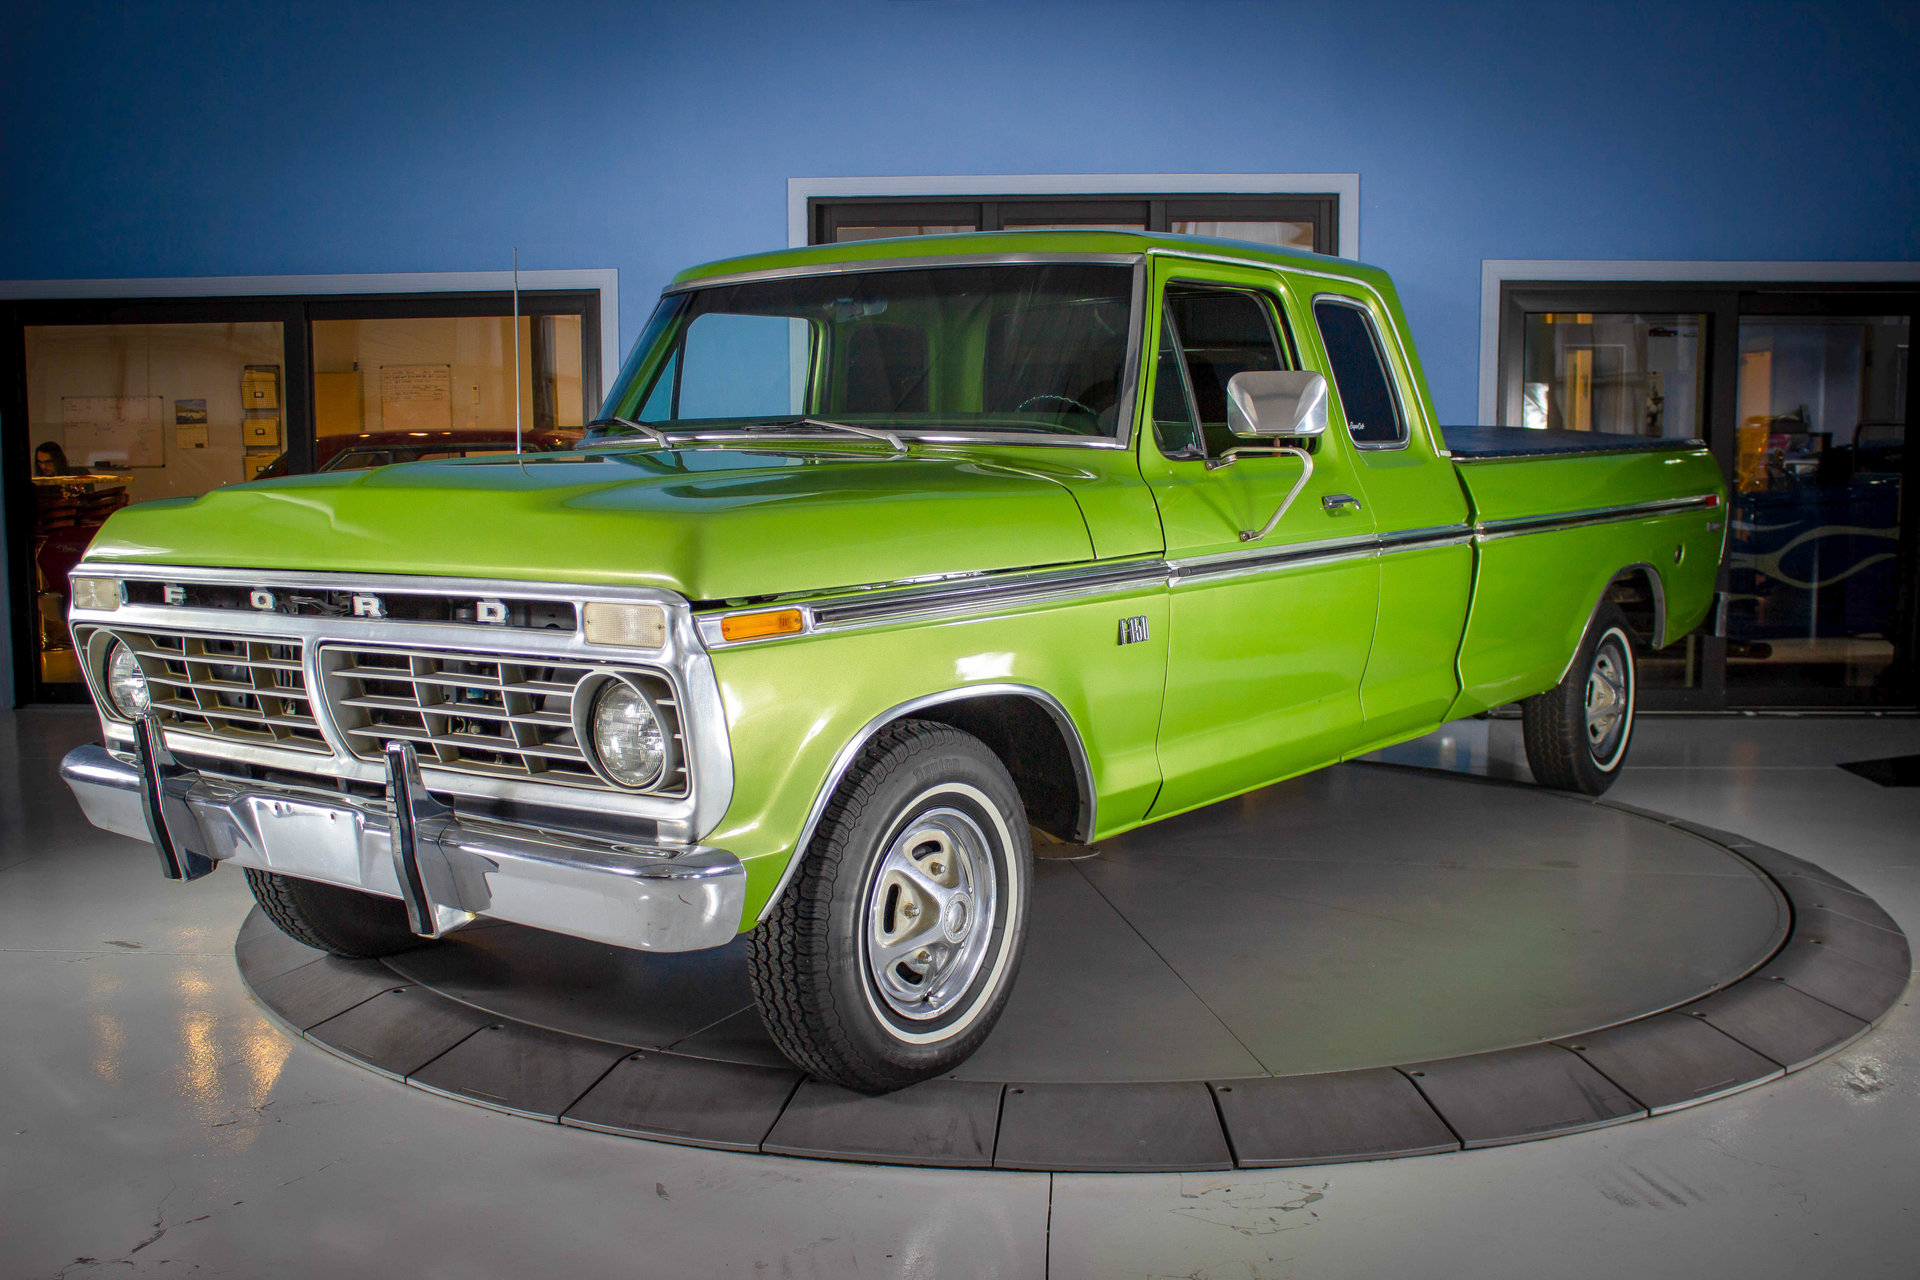 1975 ford f150 classic cars used cars for sale in tampa fl. Black Bedroom Furniture Sets. Home Design Ideas